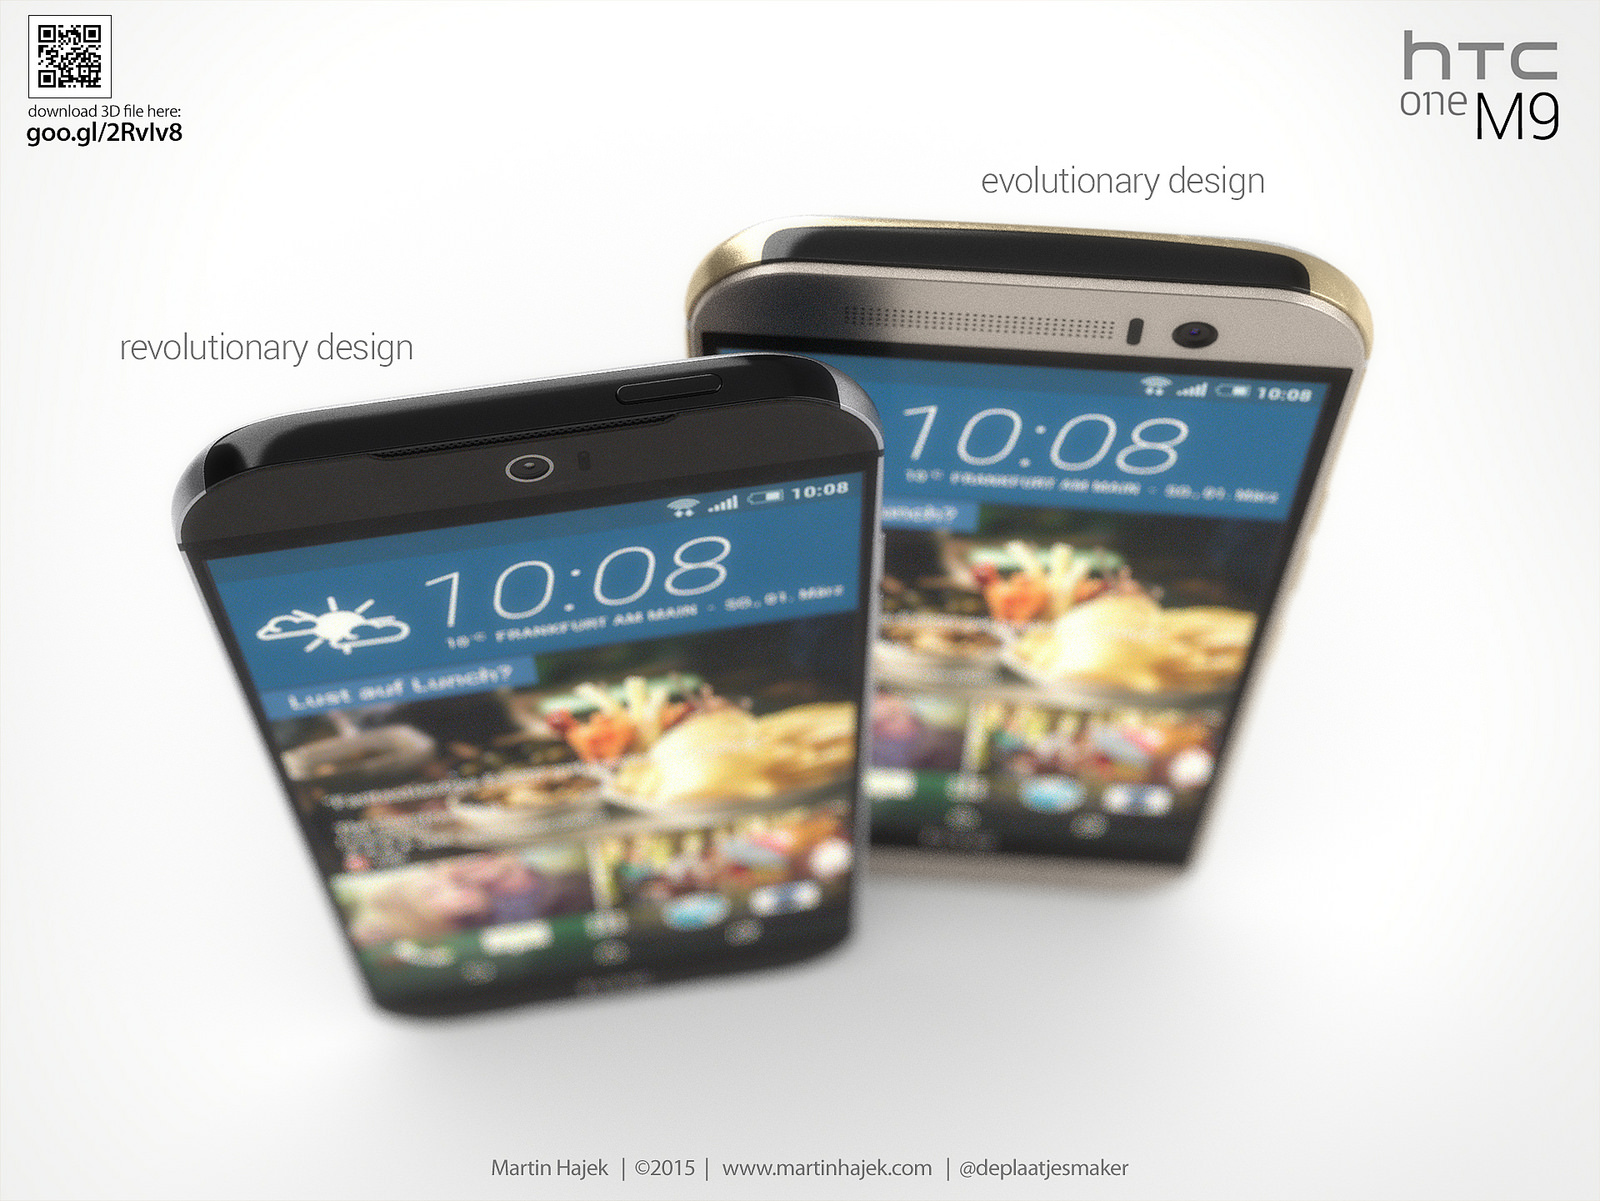 HTC-One-M9-comparativa-Martin-Hajek(2)